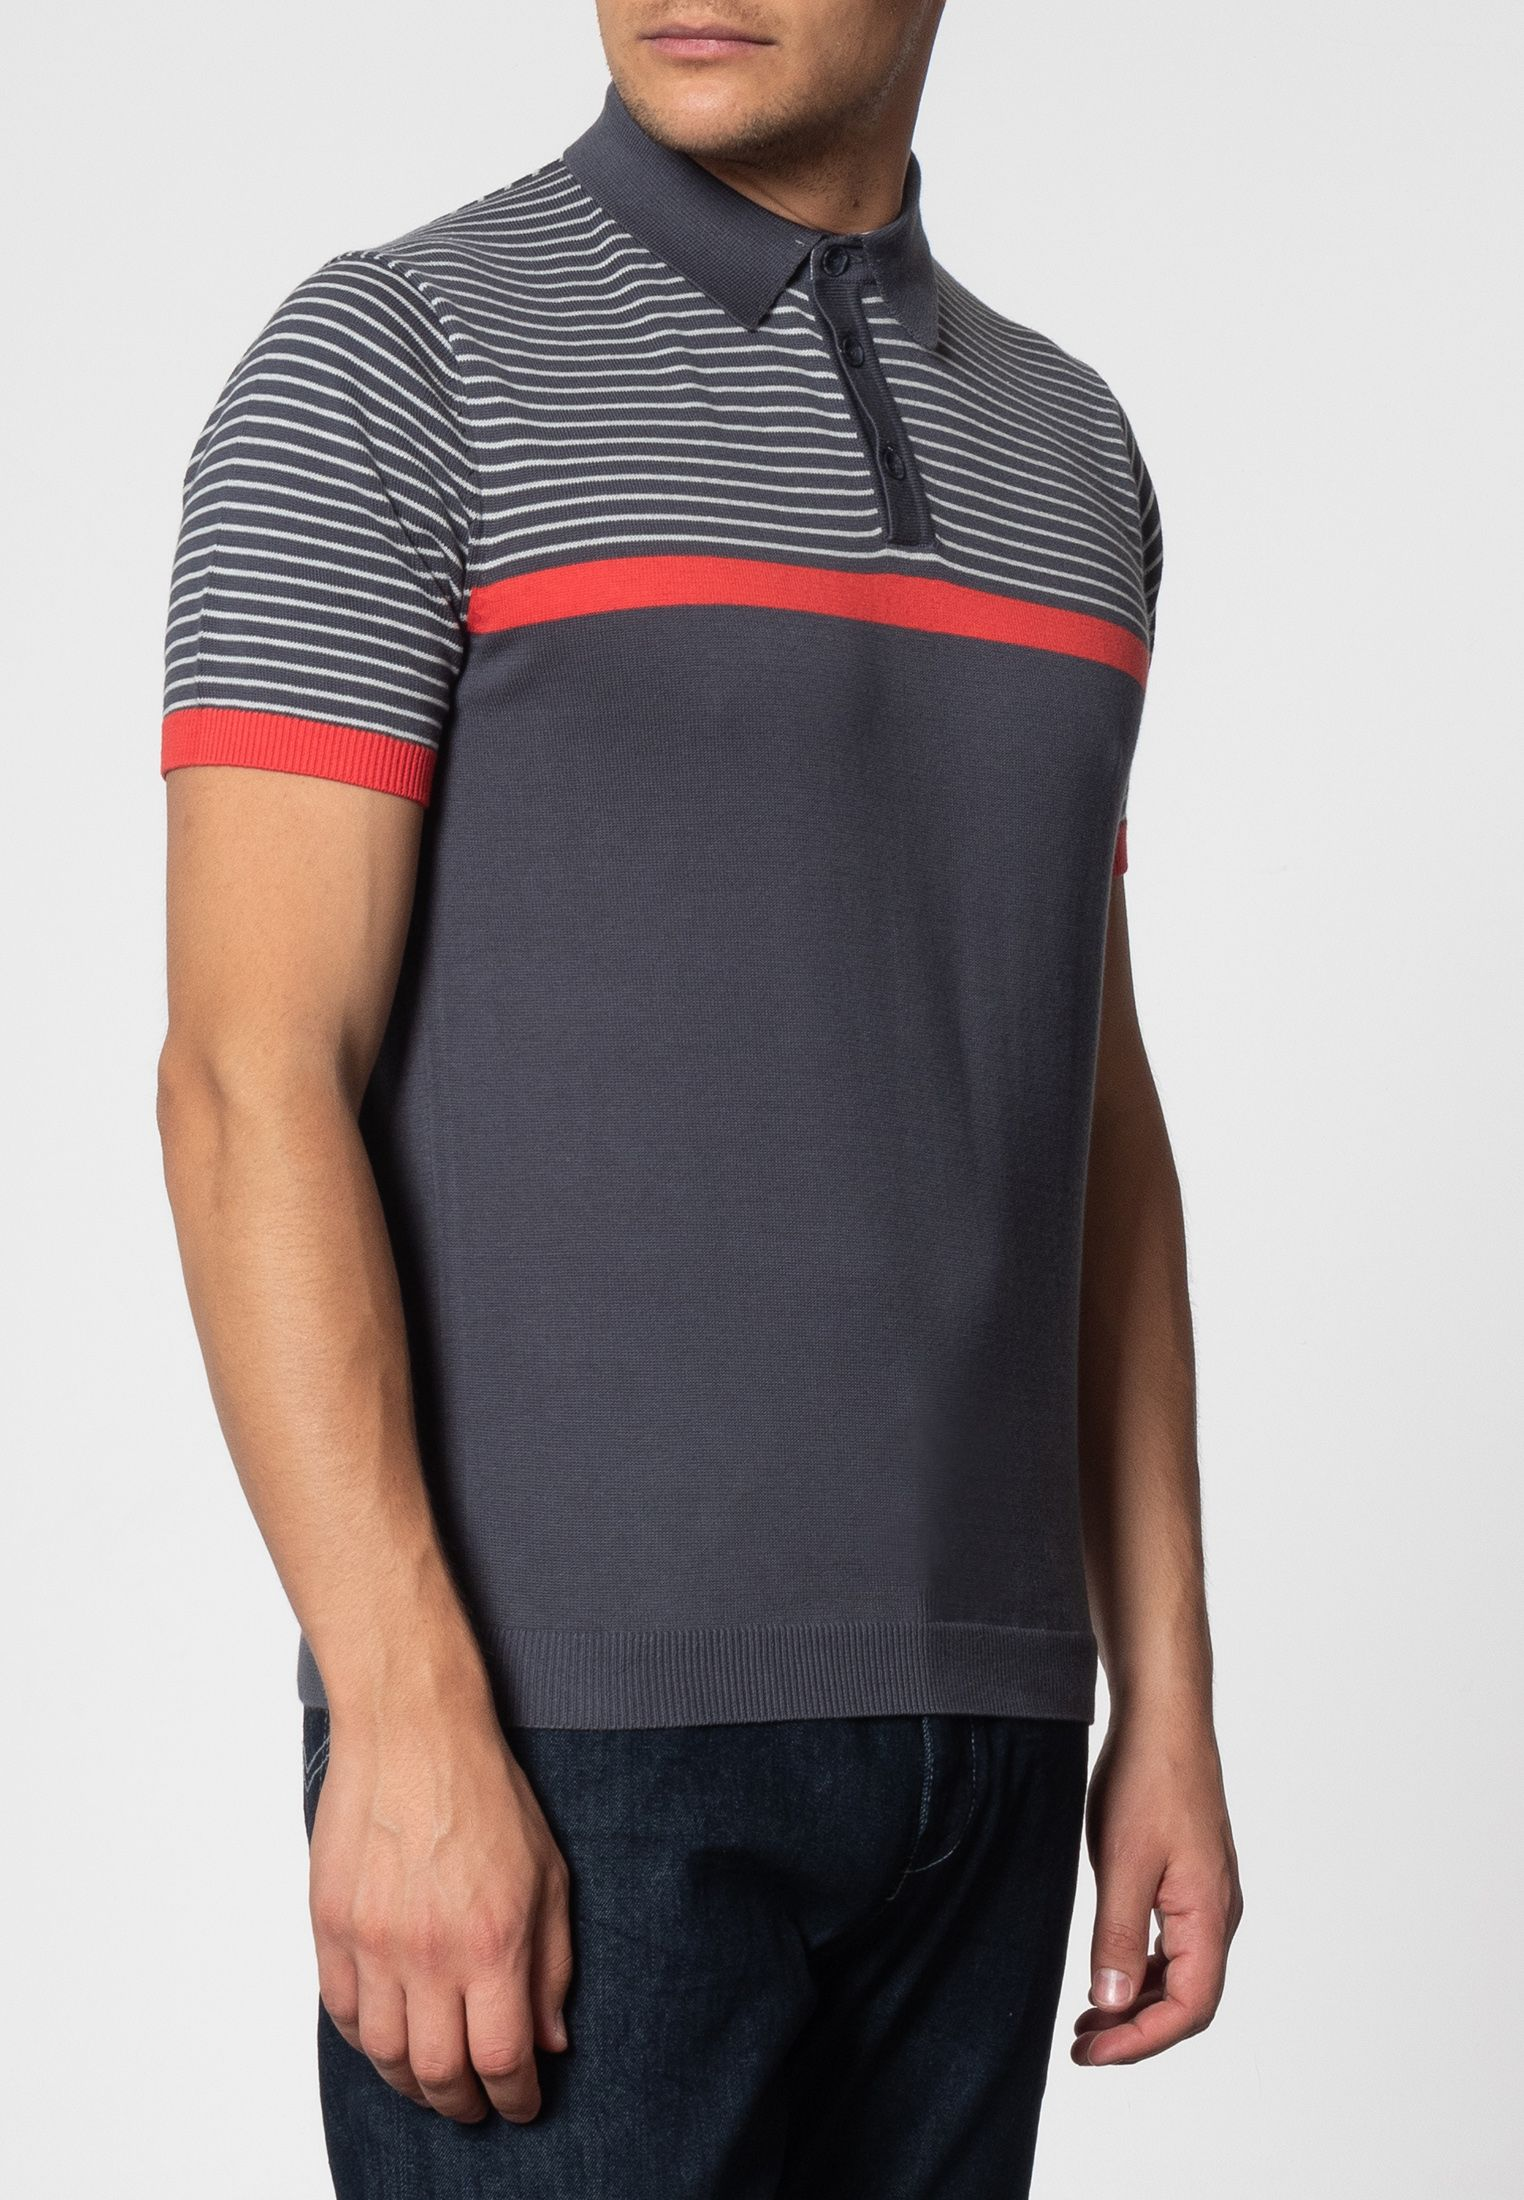 Blake Shoulder Stripe Knit Polo With Ribbed Hem In Charcoal